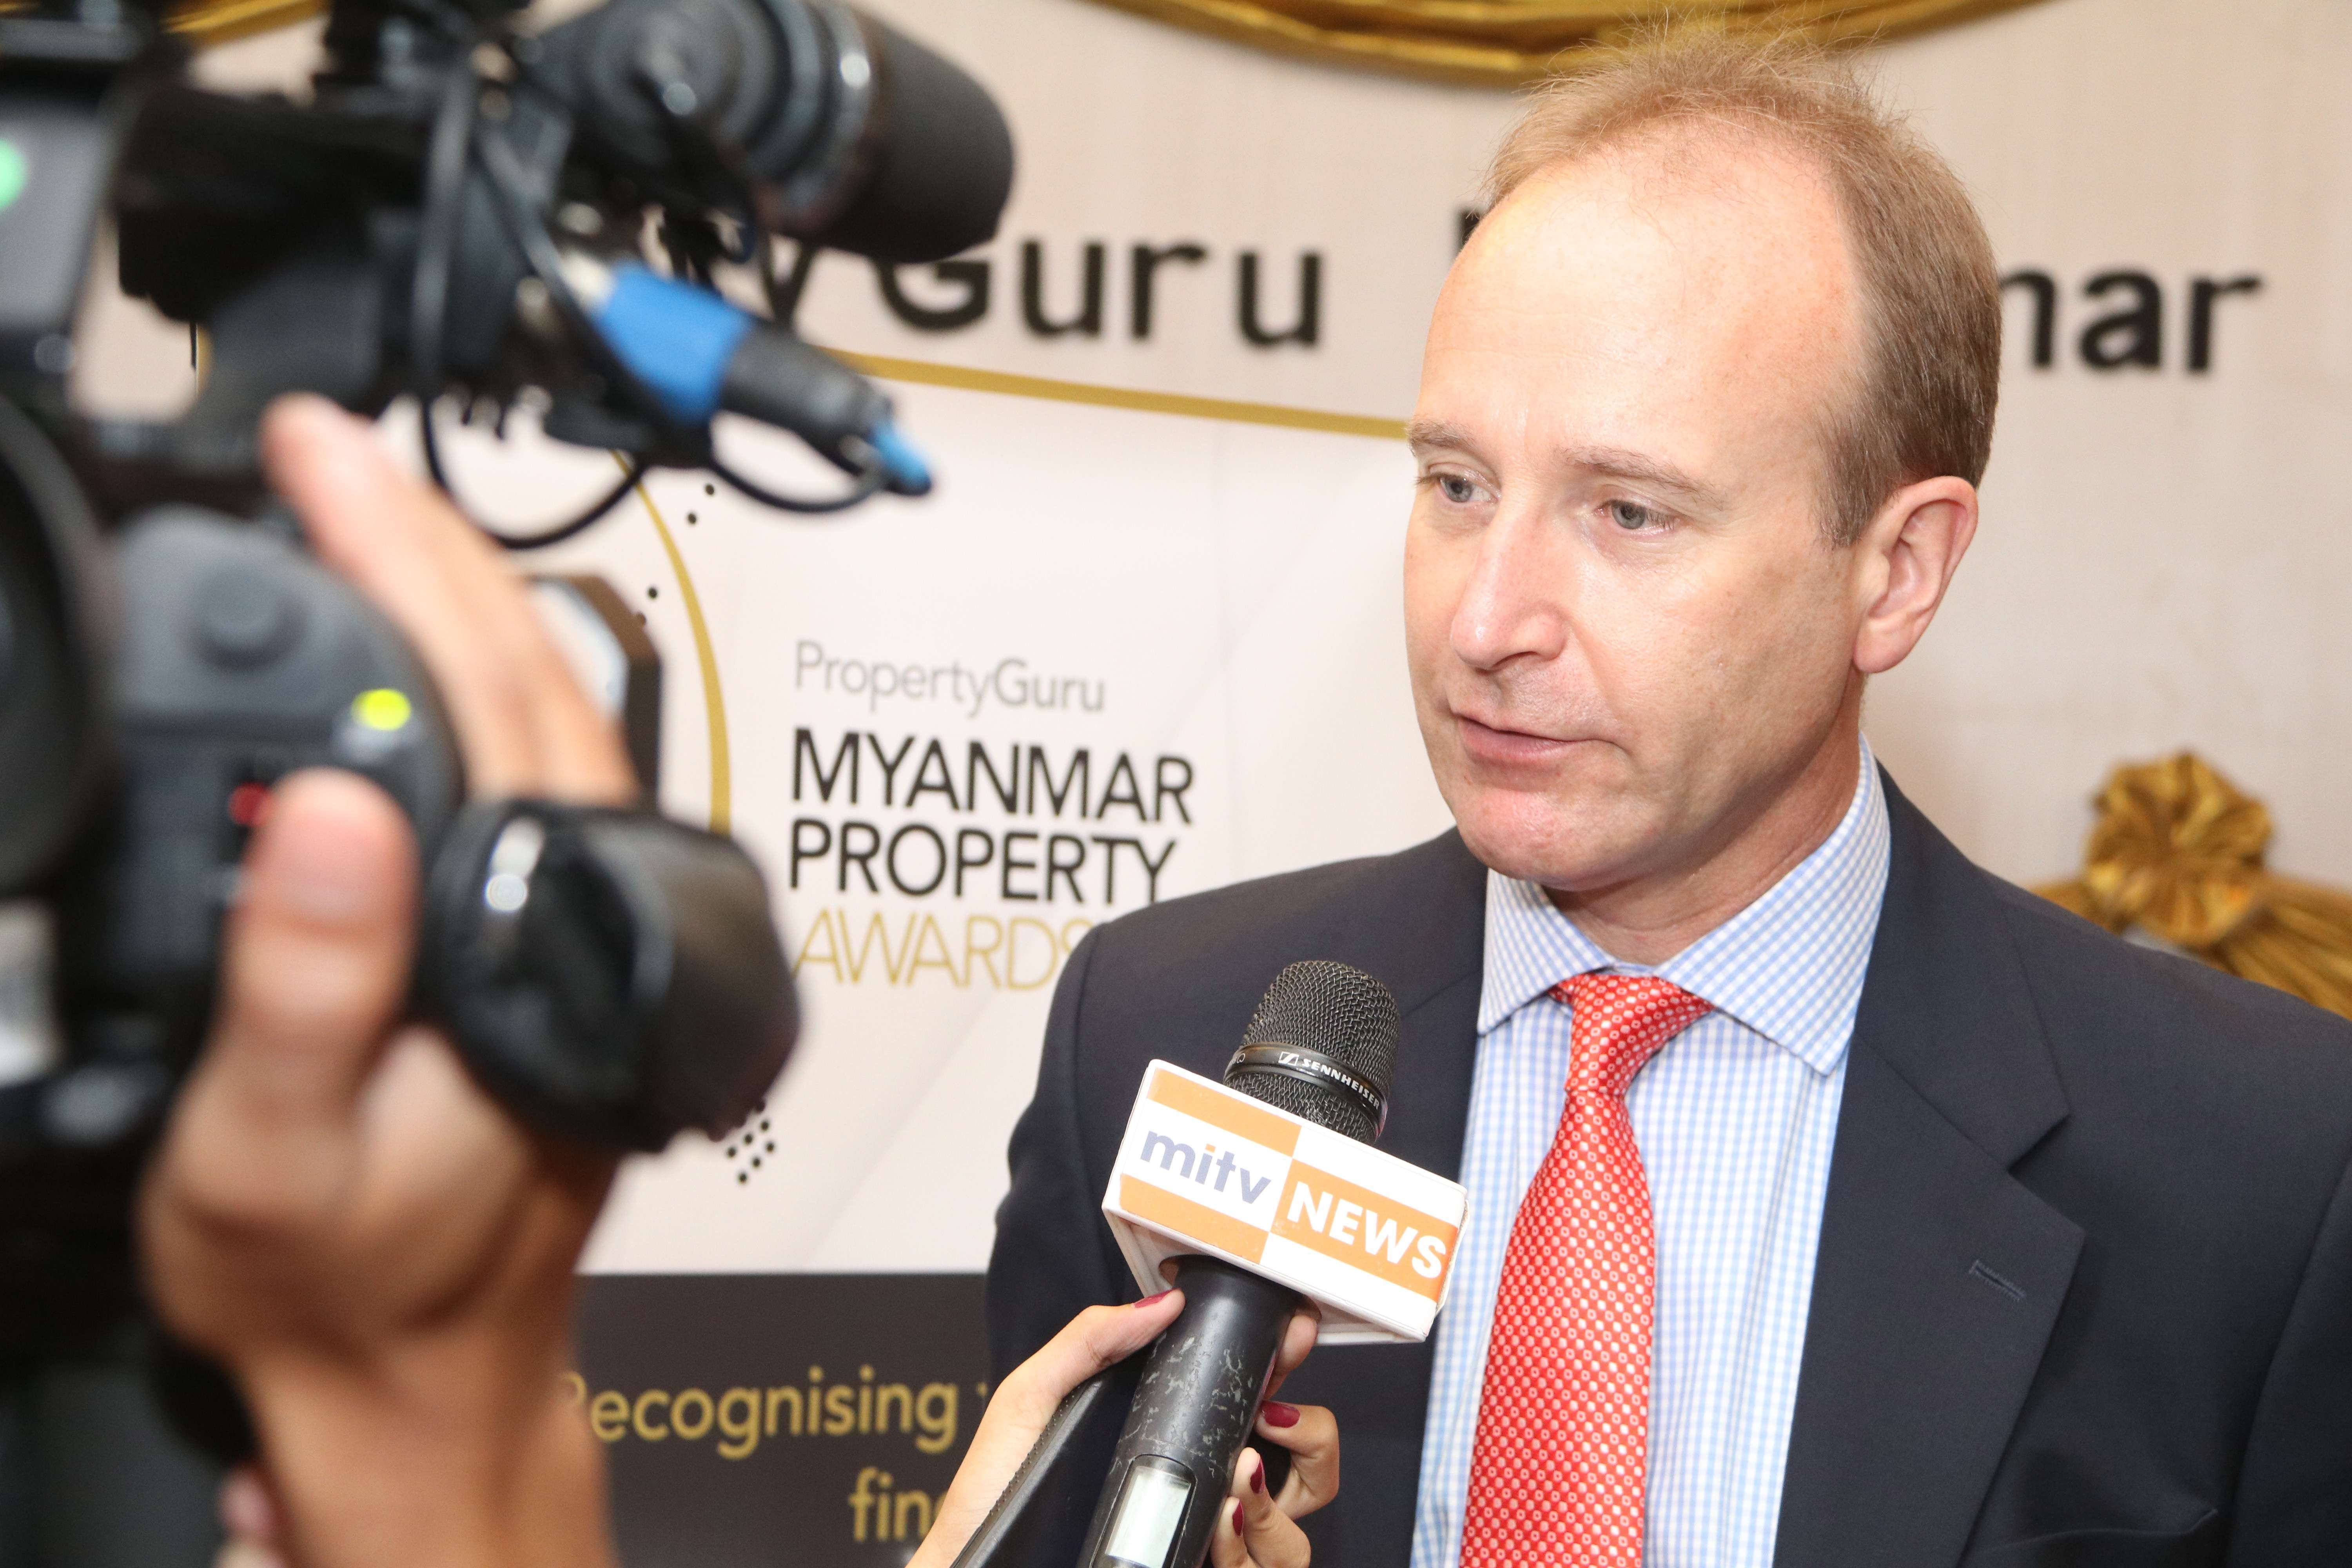 Richard Emerson, incumbent chairman of the PropertyGuru Myanmar Property Awards, talks to local media after the launch of the 2018 competition in Yangon